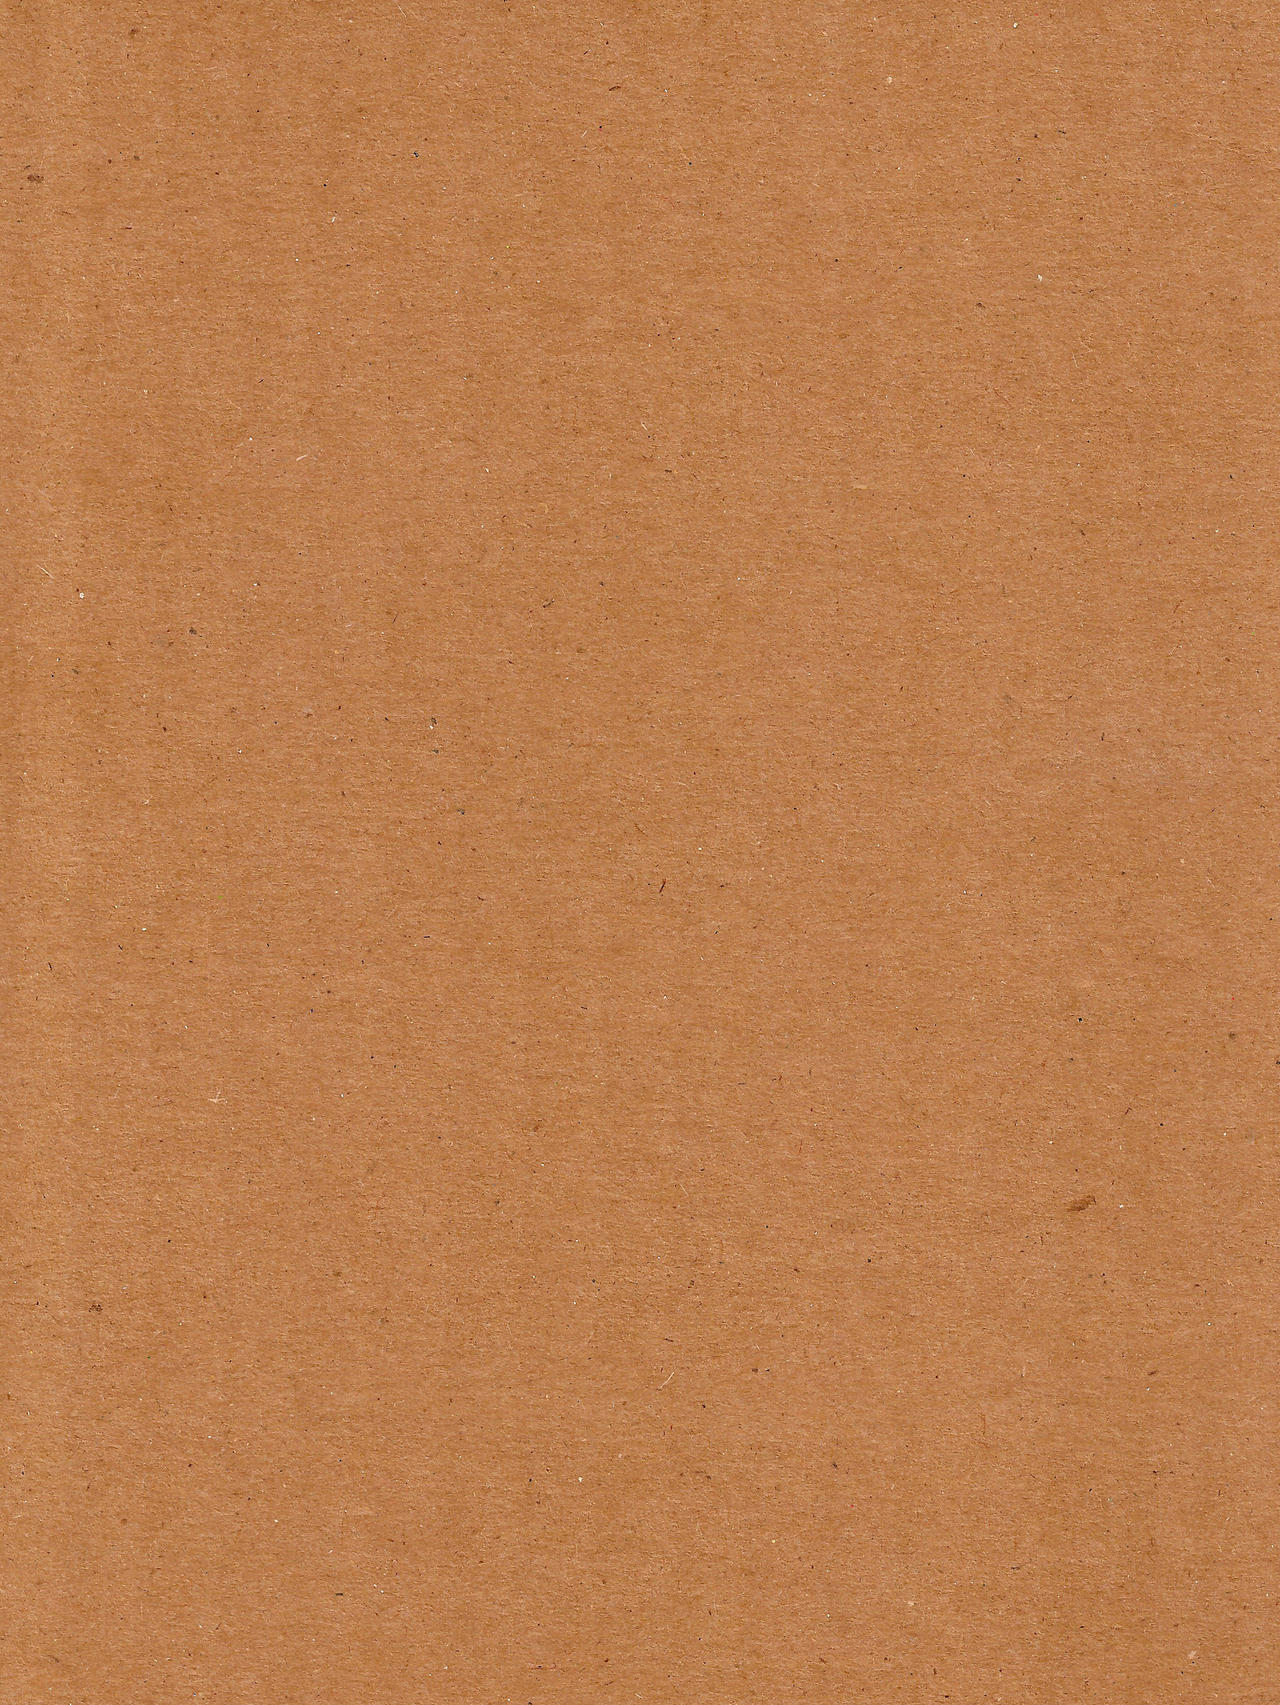 Cardboard Brown Paper Texture by Enchantedgal-Stock on ...